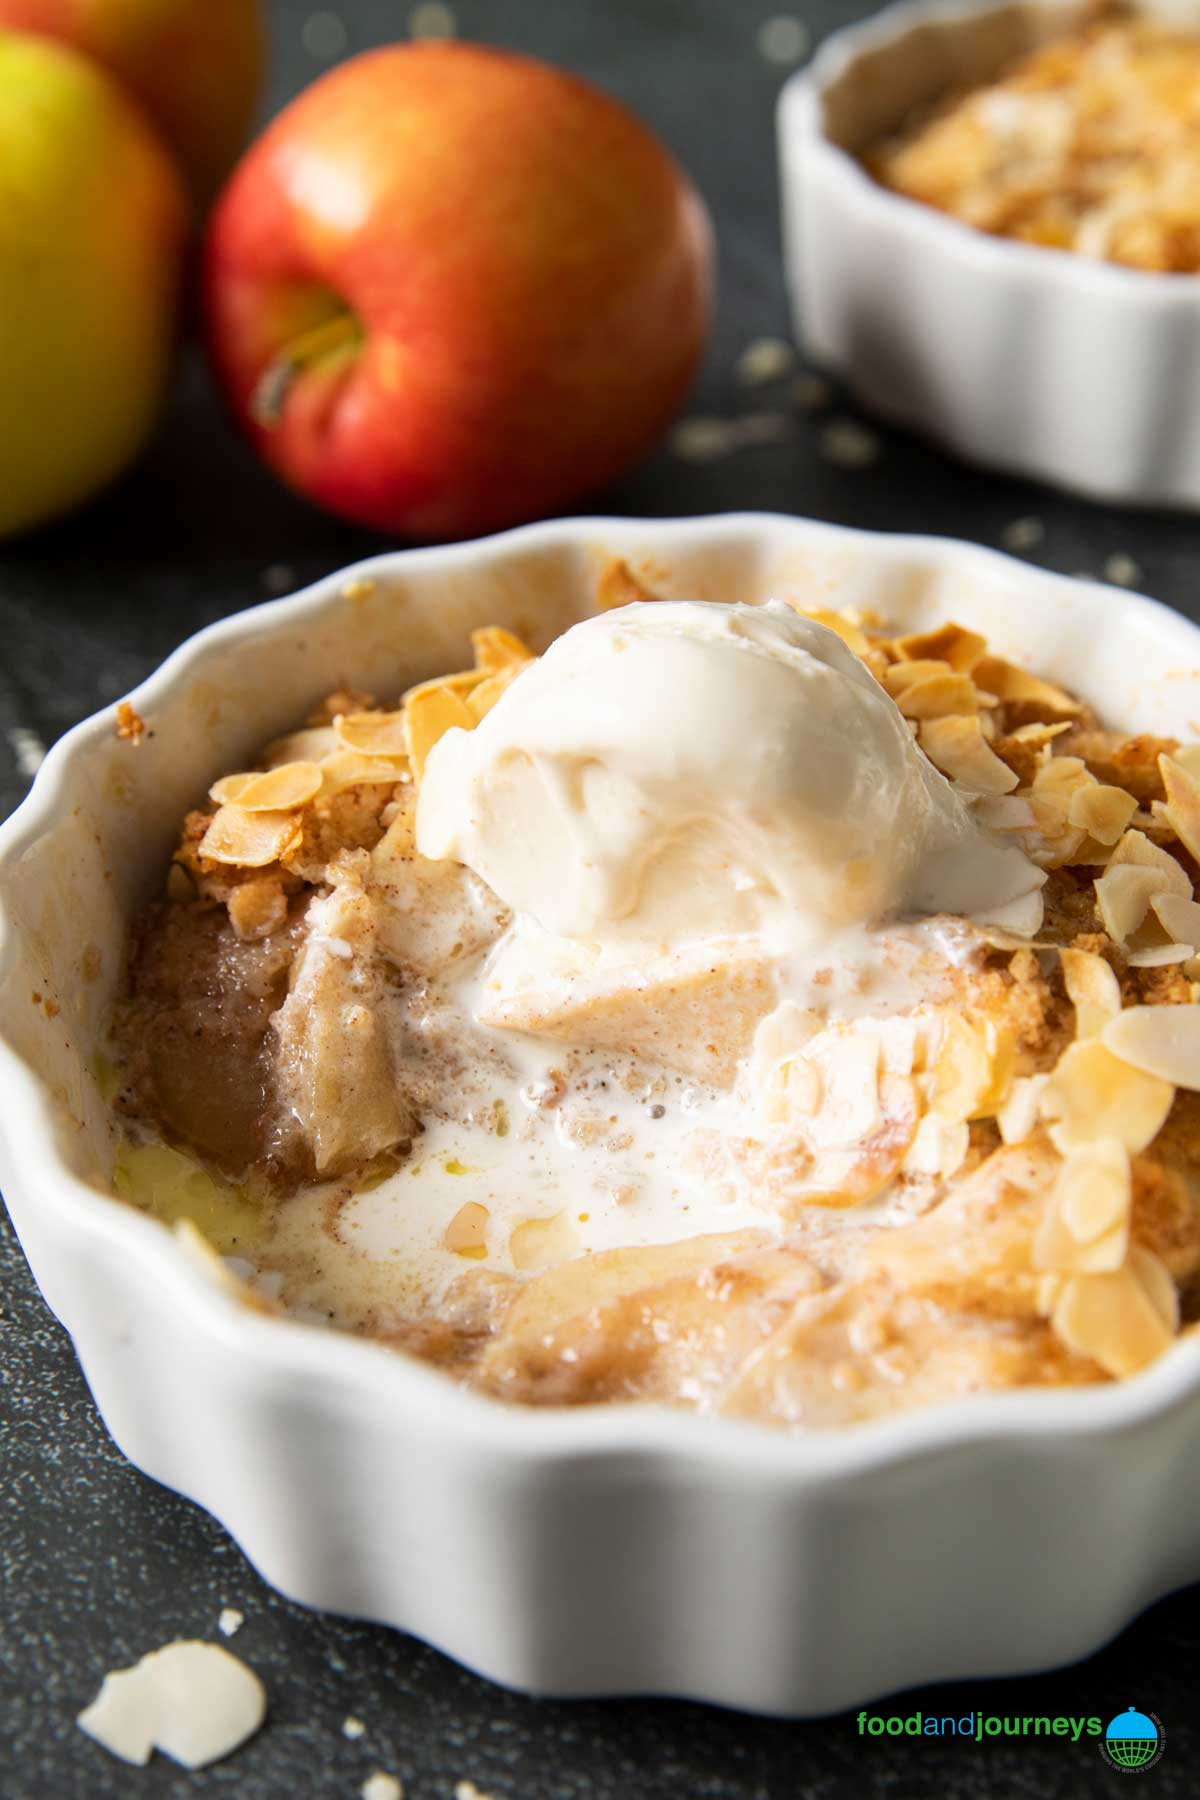 A serving of Apple Crumble, with melted ice cream on top; with some apples on the background.